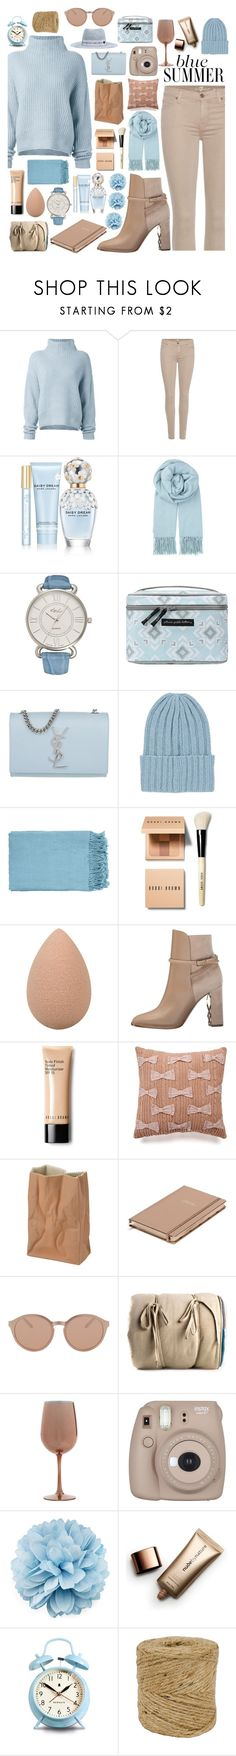 """Blue Summer"" by chocolatecupcakes545 ❤ liked on Polyvore featuring Le Kasha, 7 For All Mankind, Marc Jacobs, BeckSöndergaard, Kim Rogers, Petunia Pickle Bottom, Yves Saint Laurent, The Elder Statesman, Surya and Bobbi Brown Cosmetics"